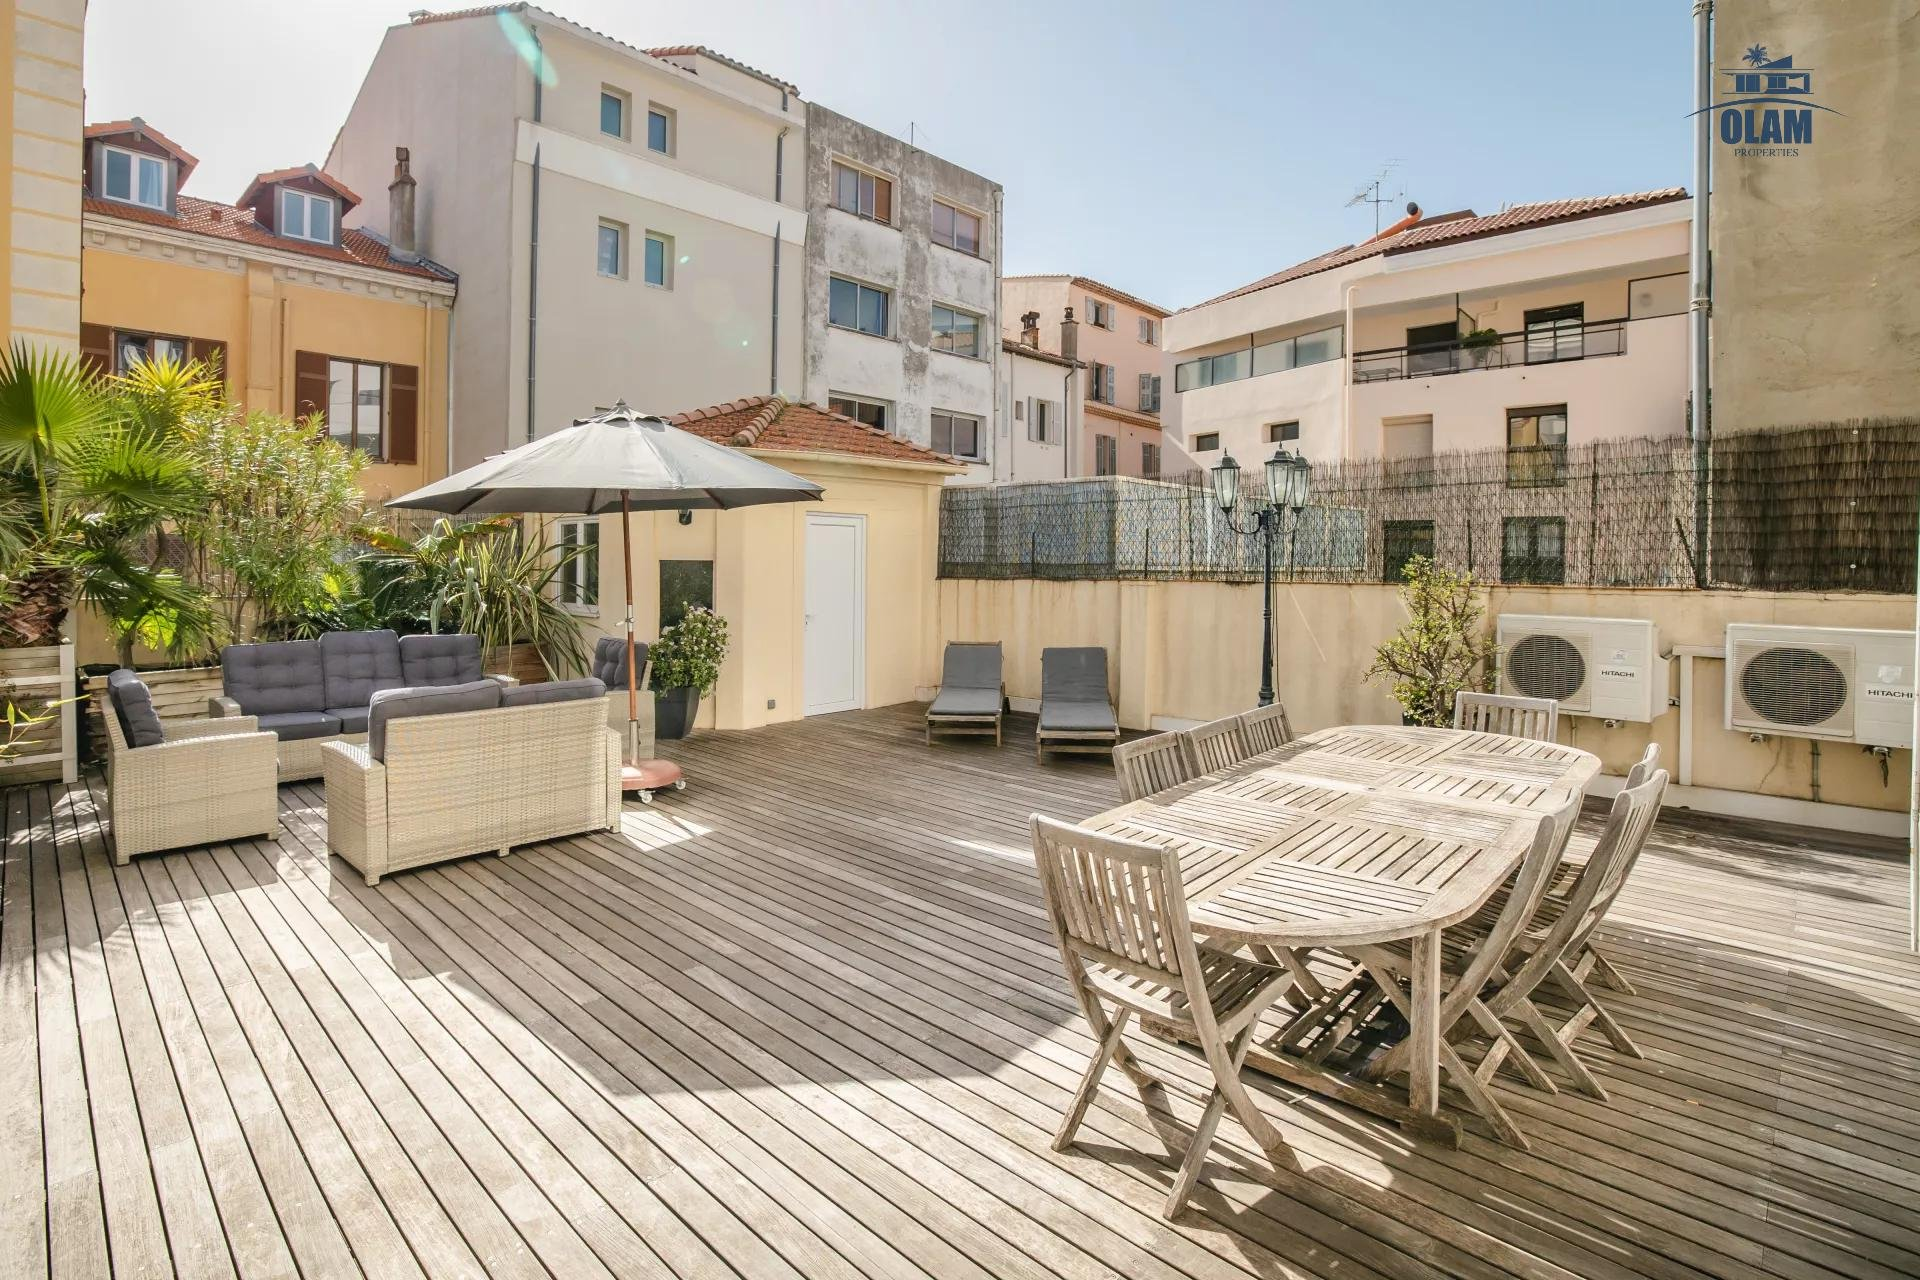 3-br in the heart of Cannes, amazing terrace